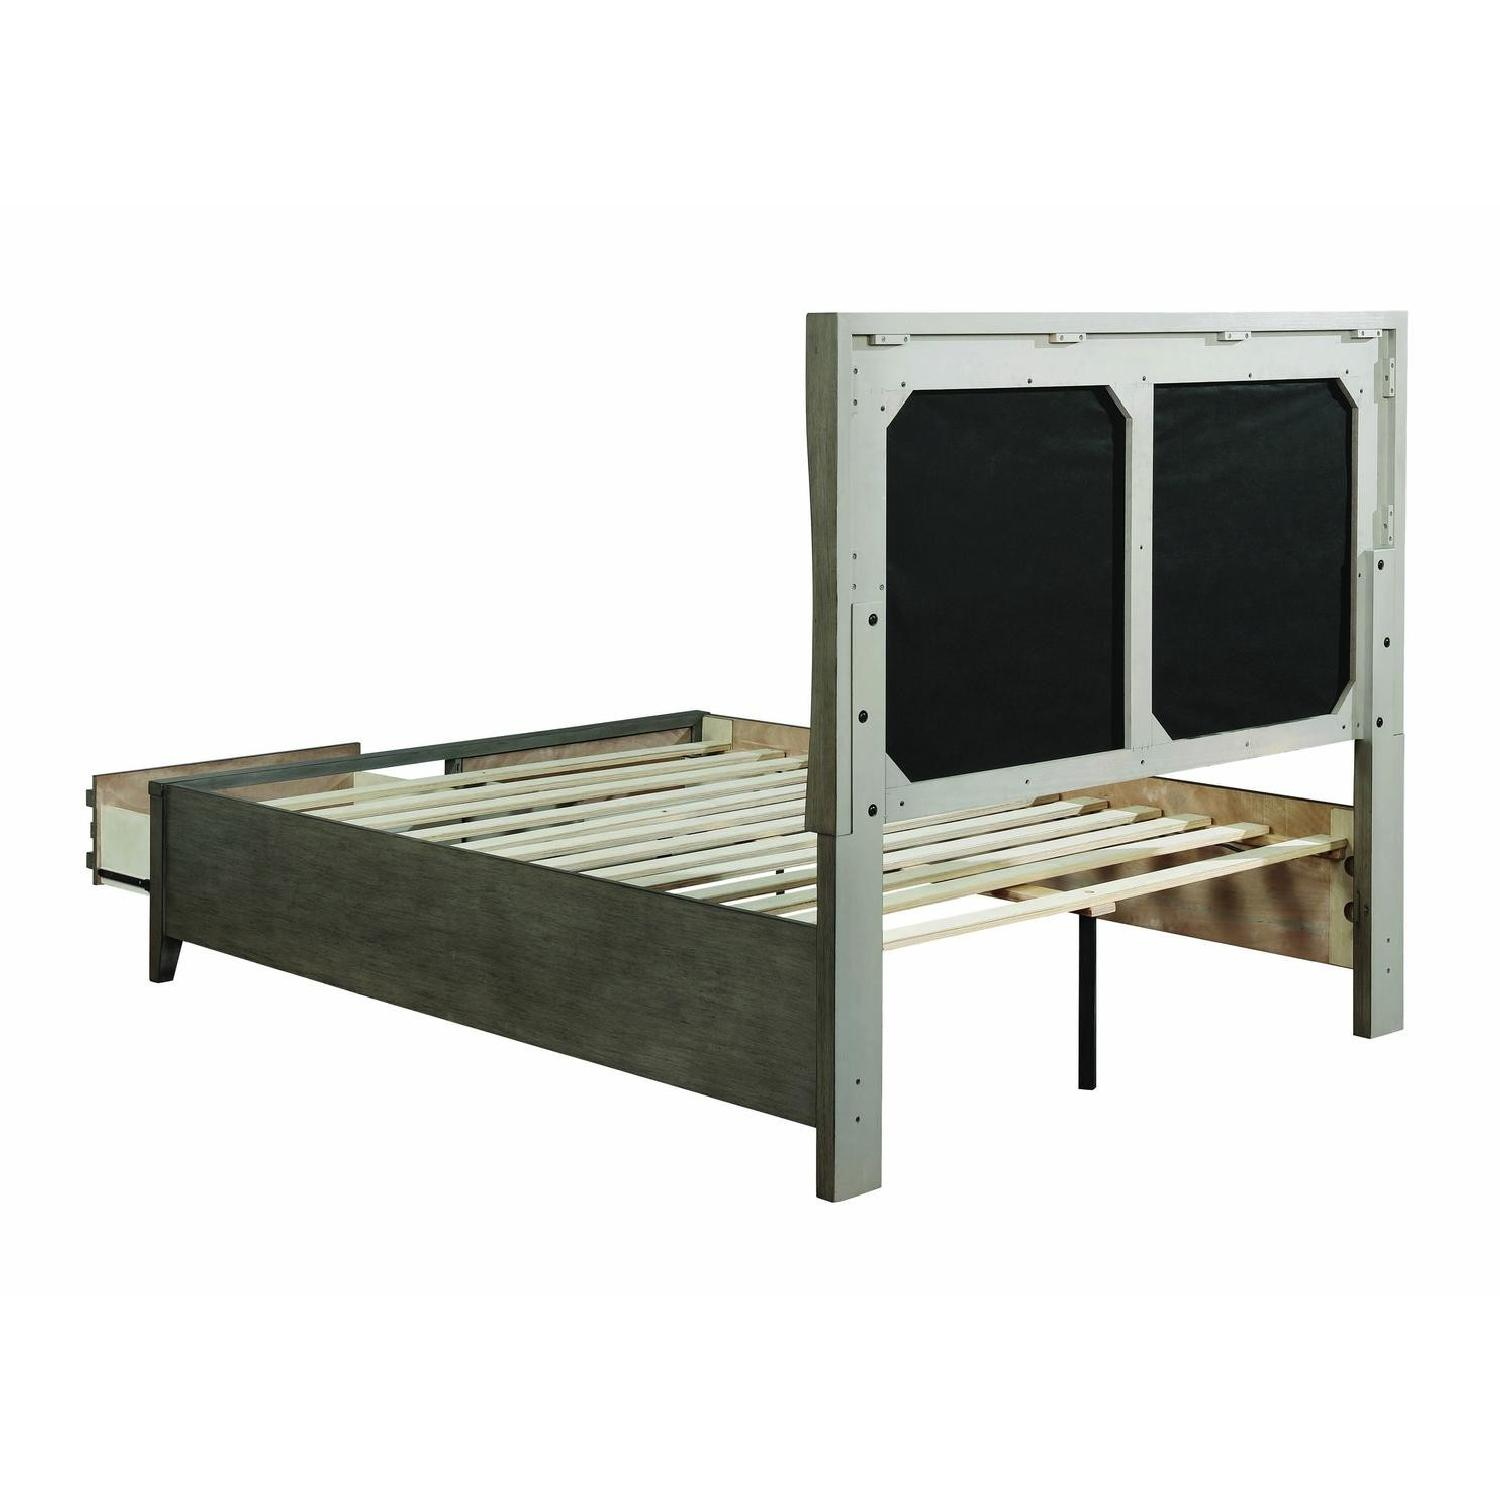 Queen Bed in Dark Taupe w/ 2 Storage Drawers - image-6